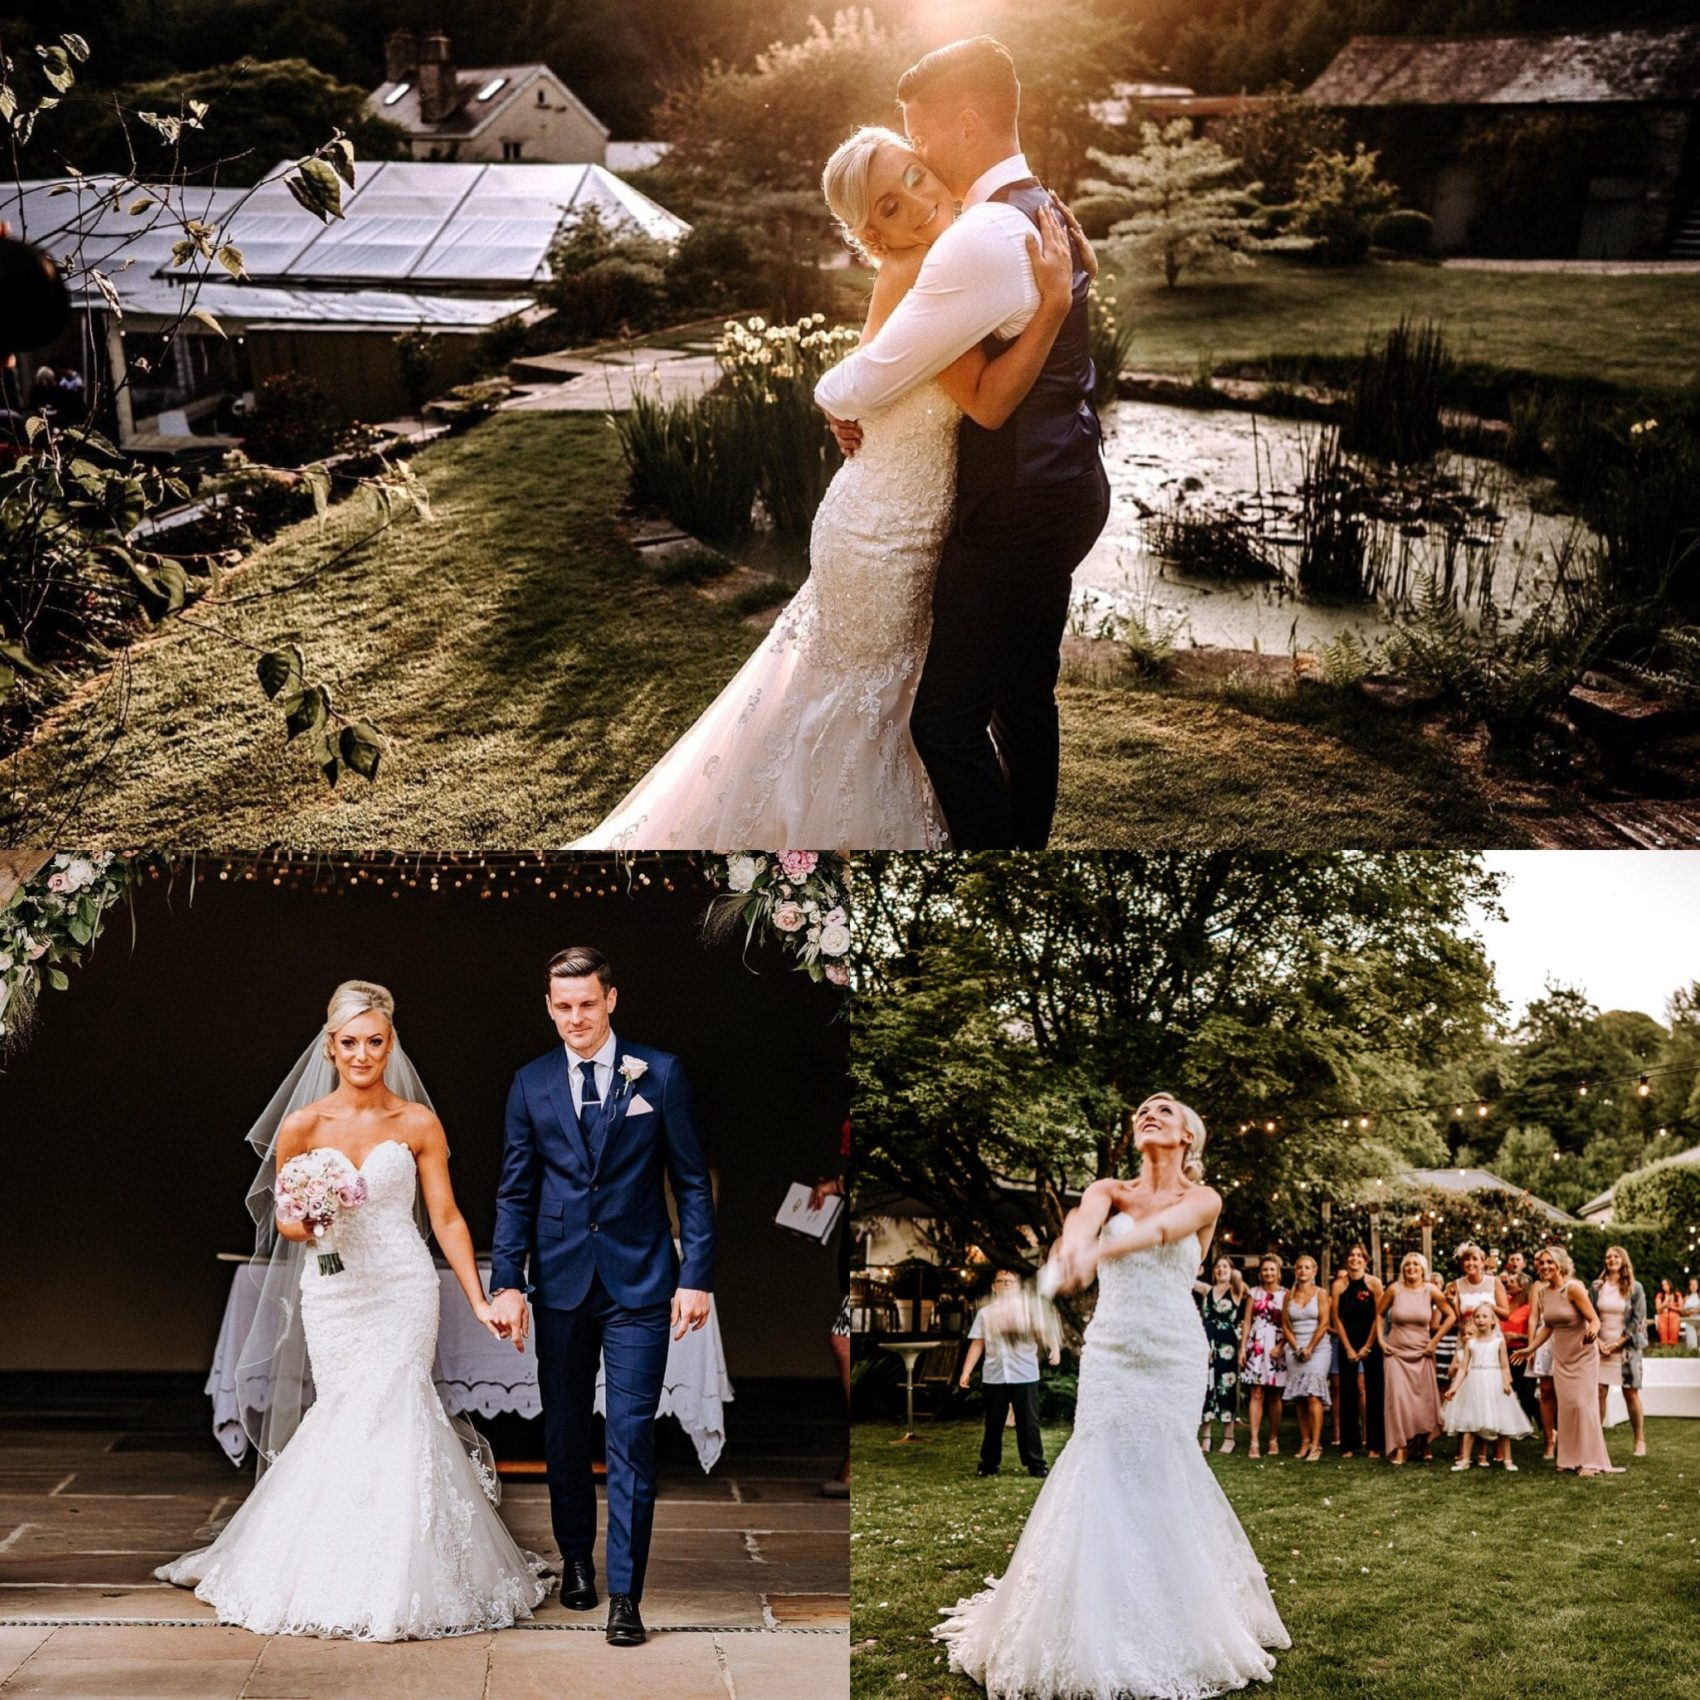 Couple, wedding, bridge & groom, pond, barn, flowers, bouquet toss, girls, ladies, guests, friends, veil, woodland, greenery, sunset, ever after, lower grenofen, dan ward, photography